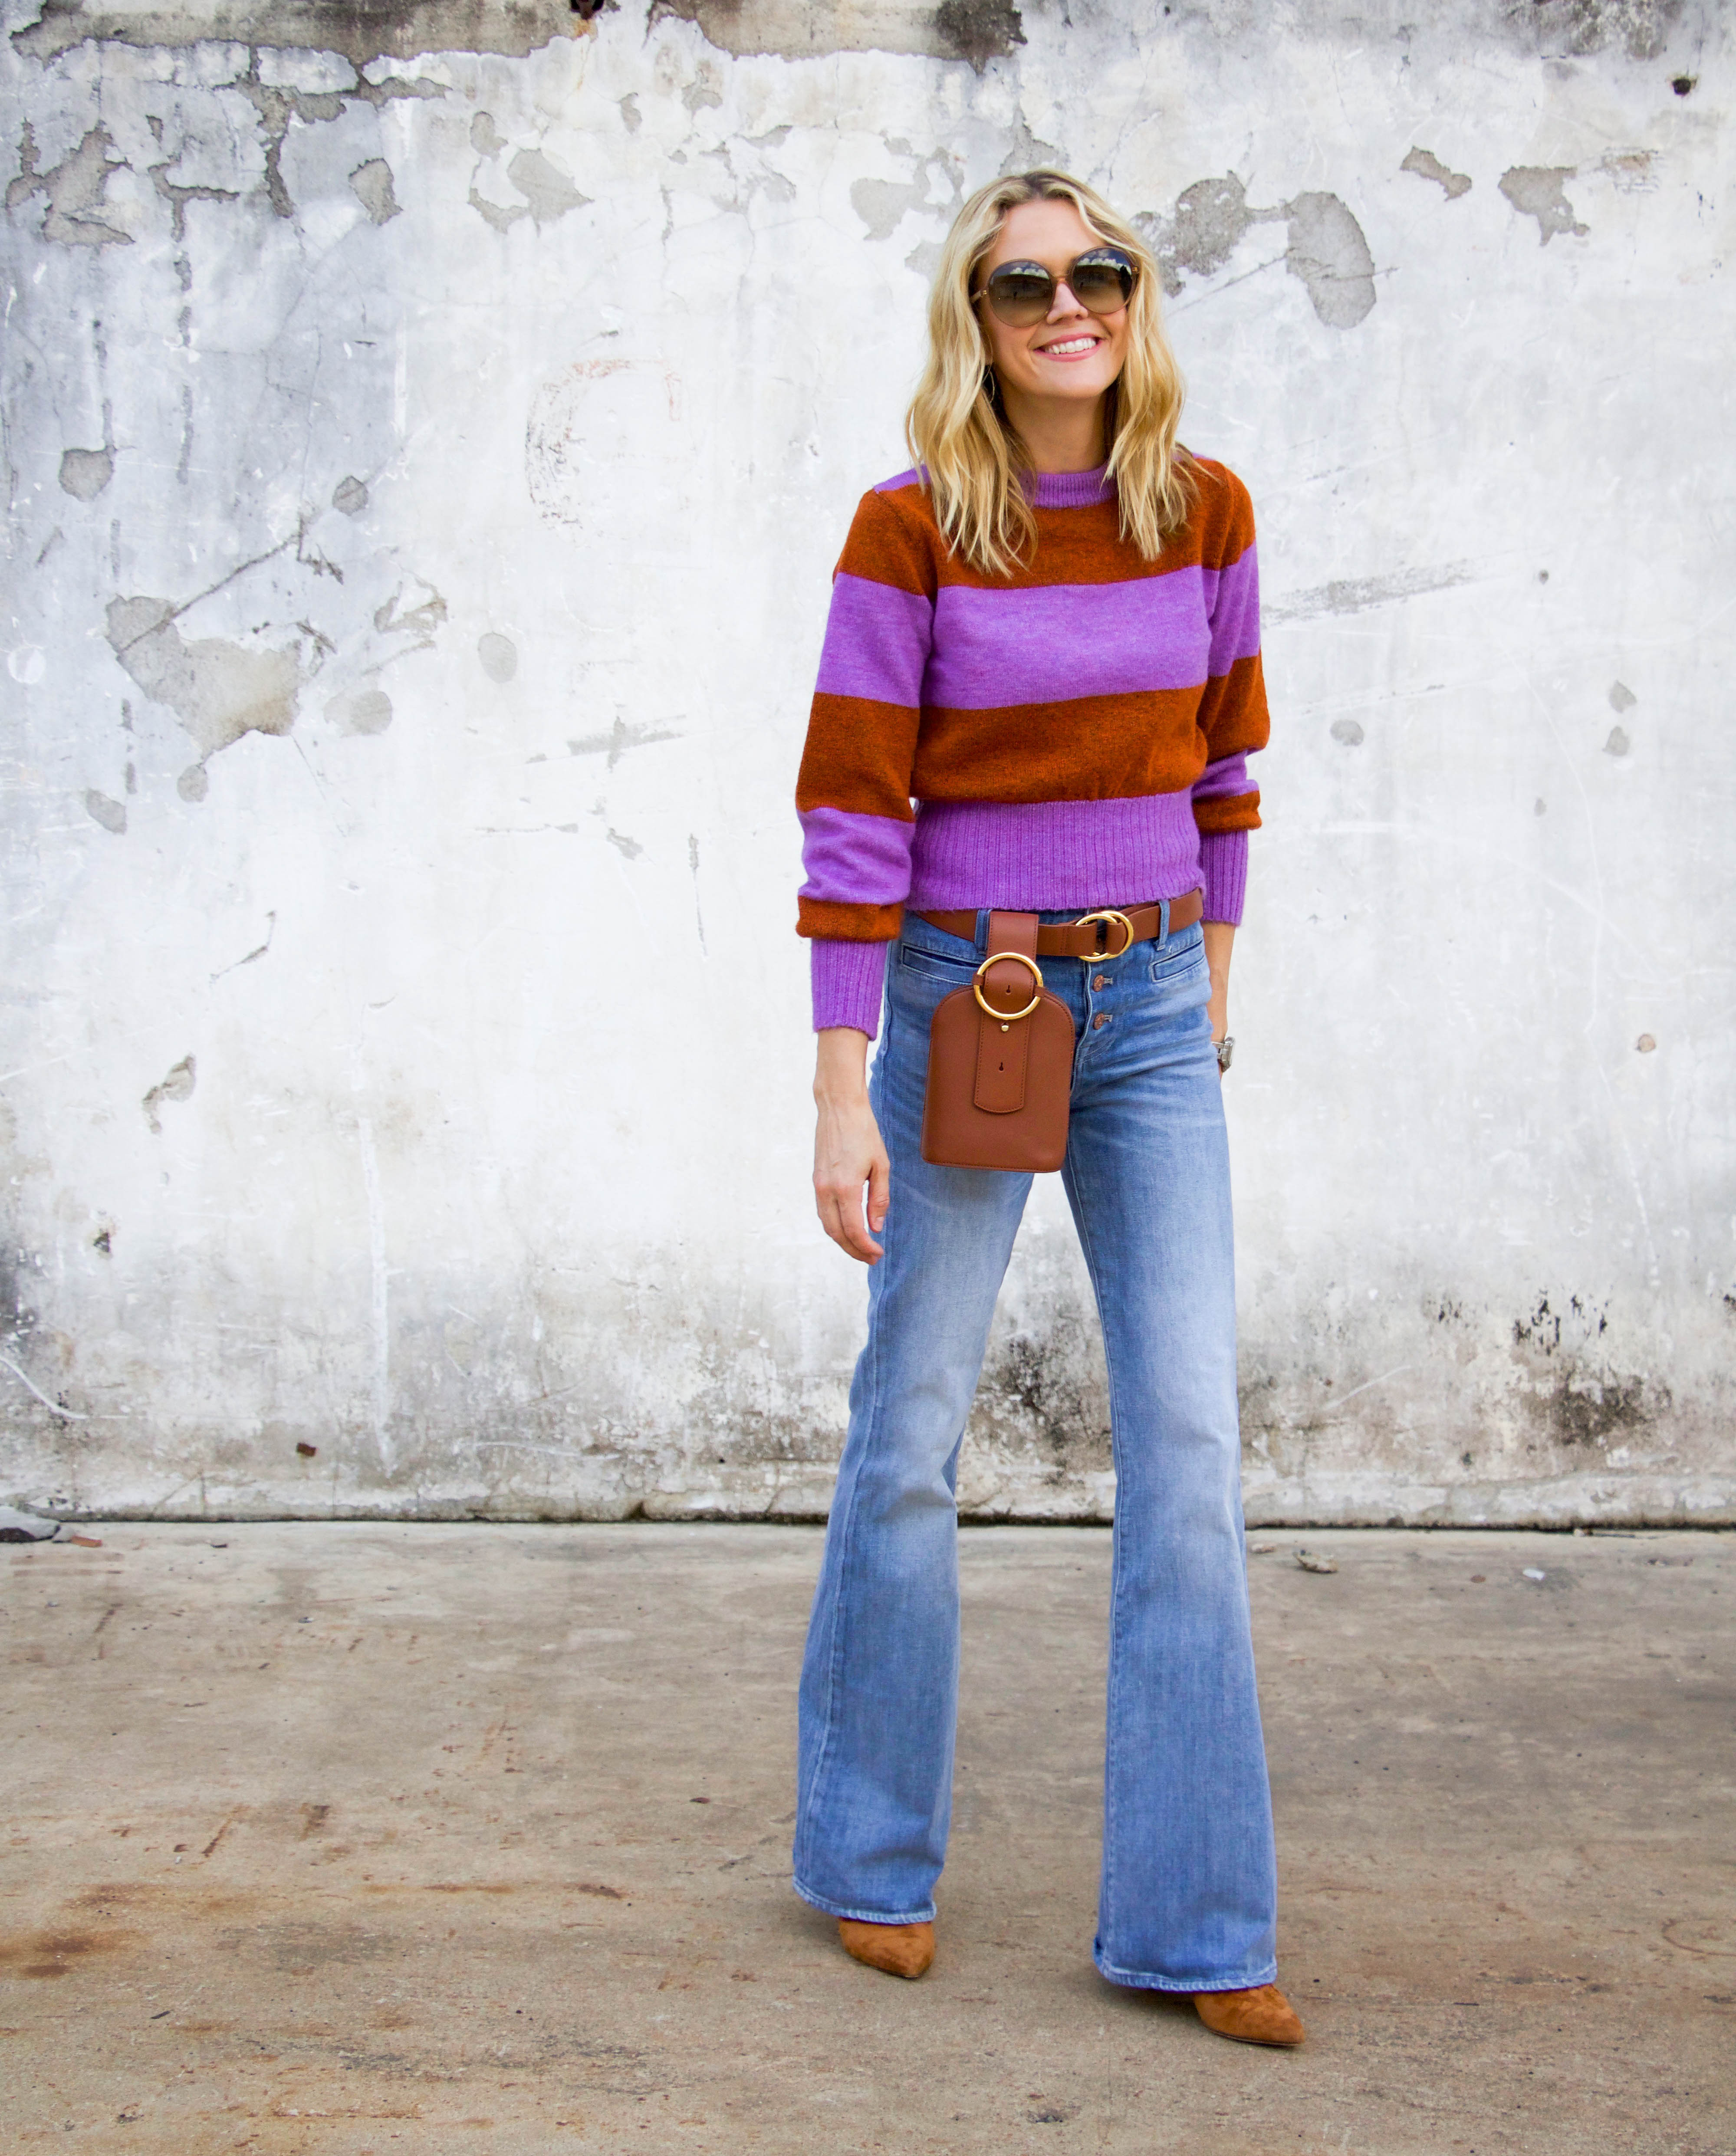 Topshop sweater, belt bag, flare denim, Veronica Beard mules